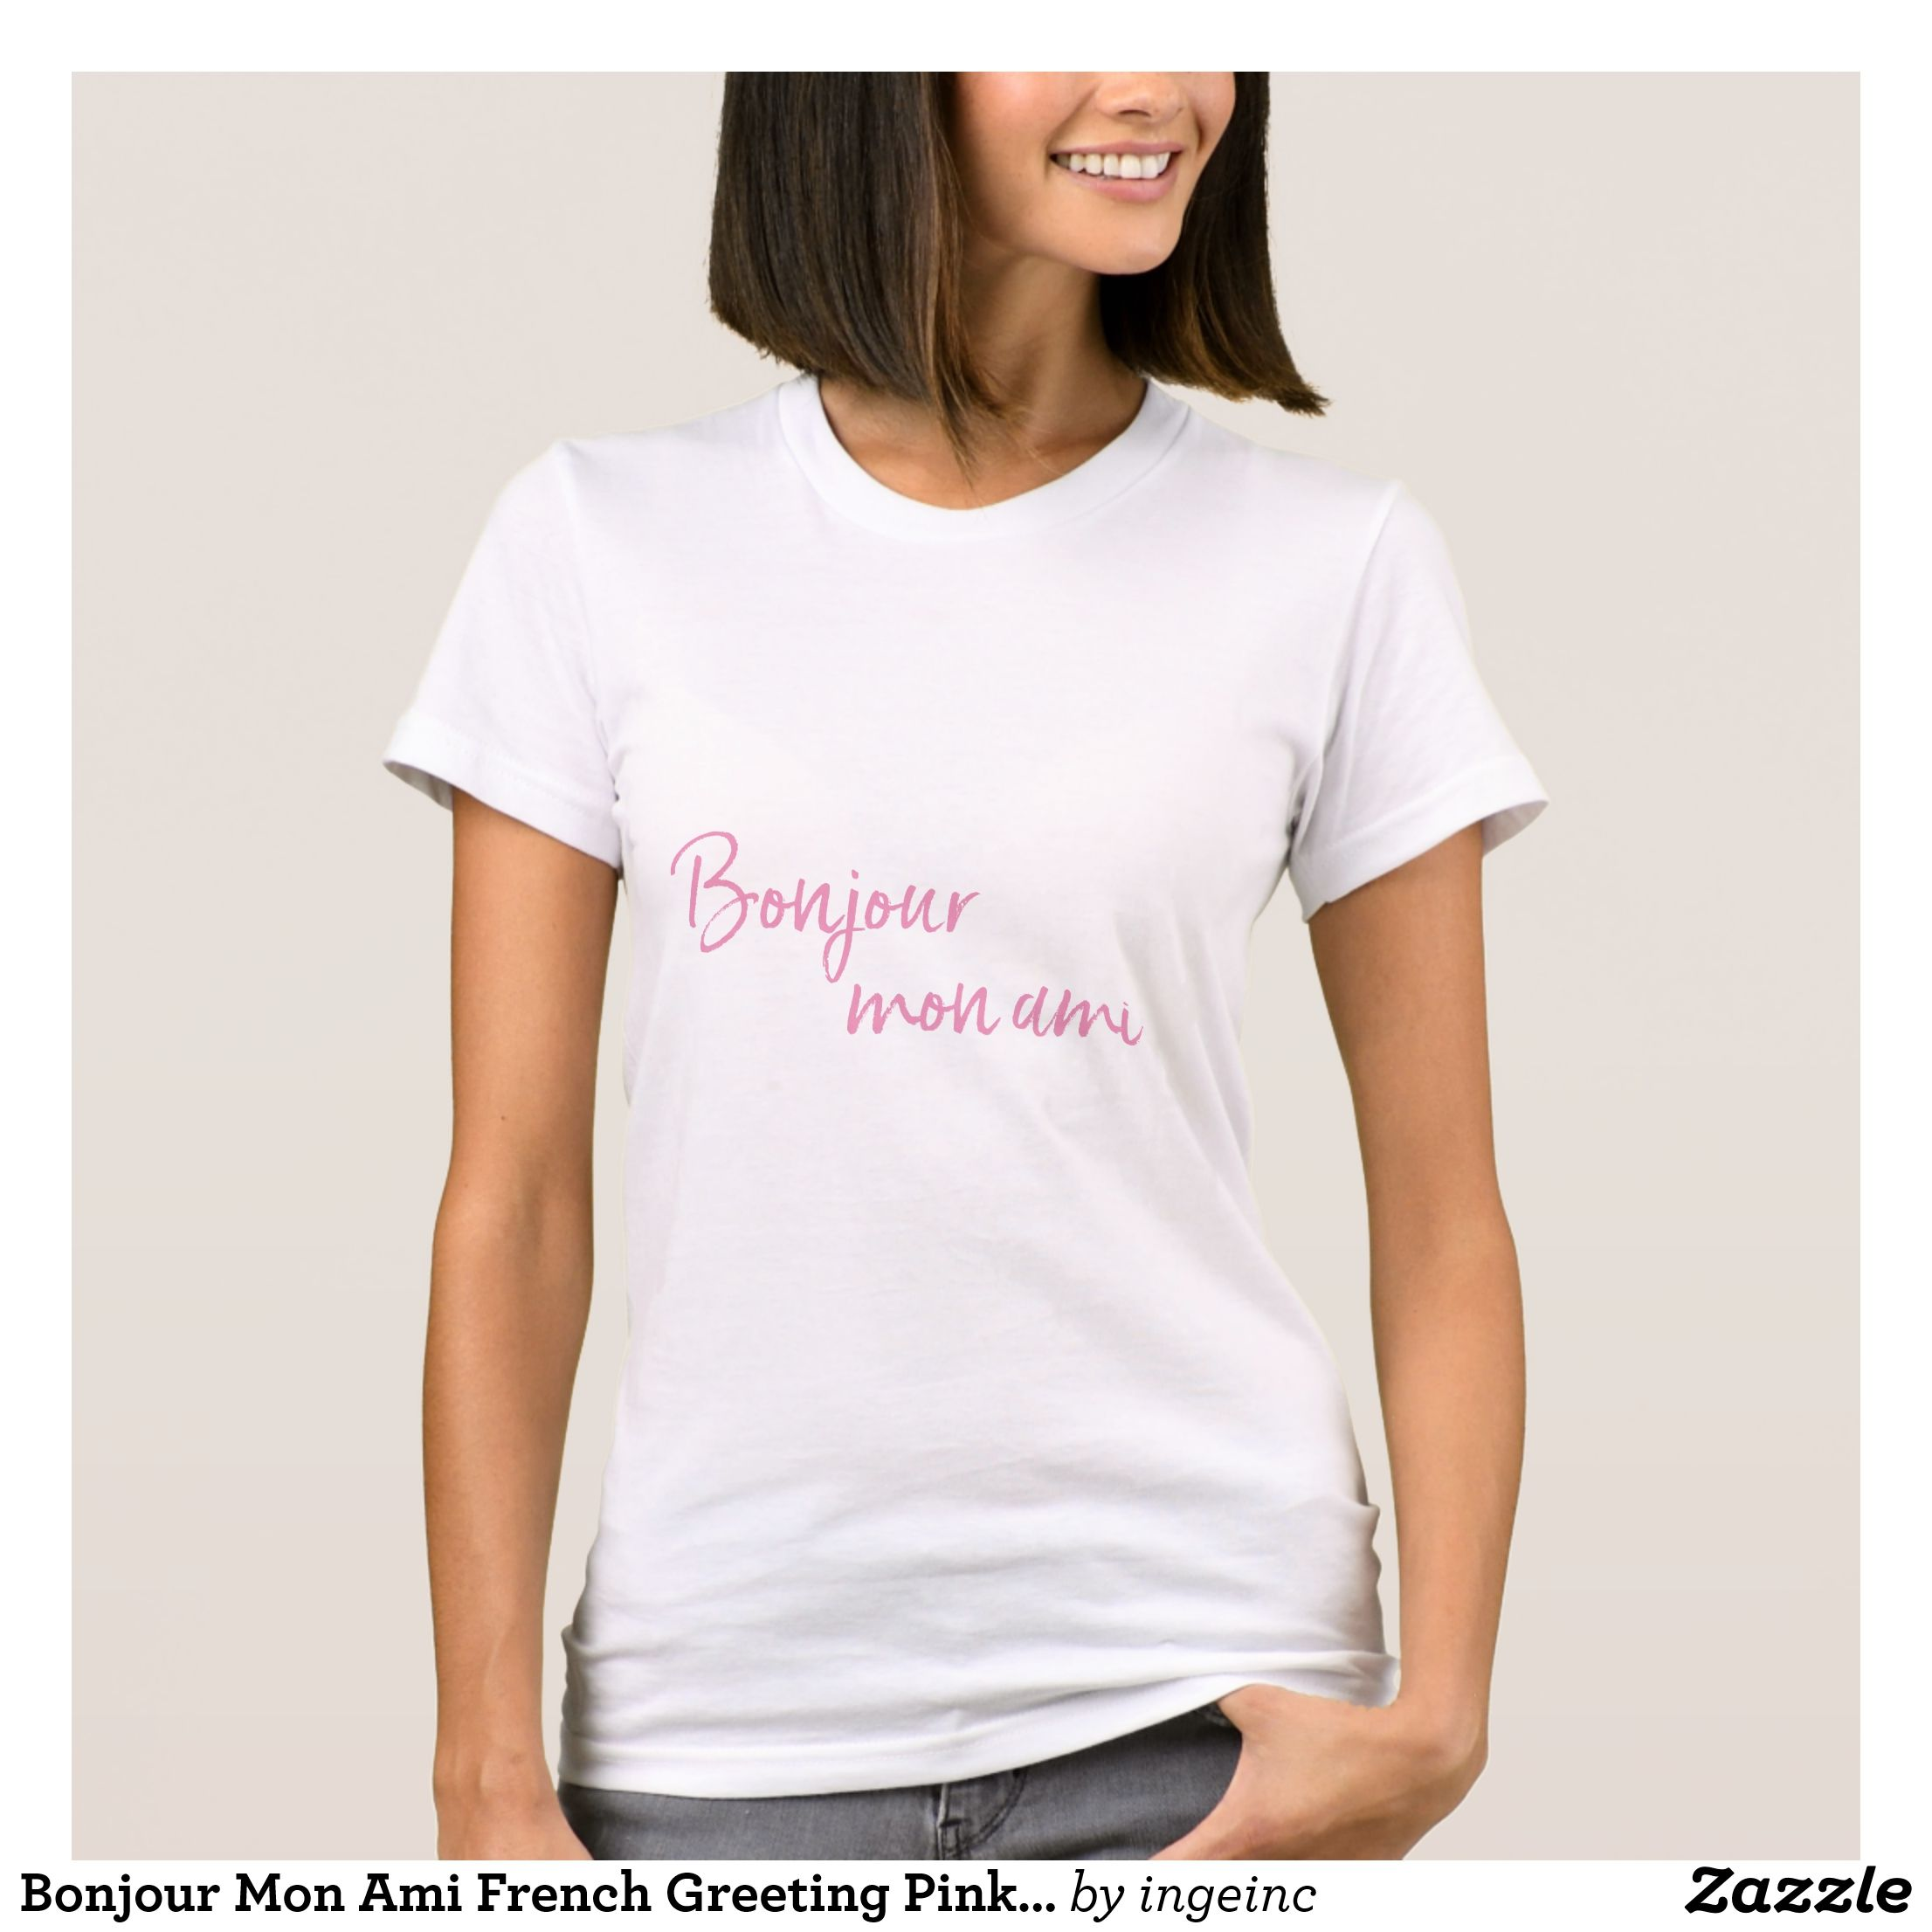 Bonjour mon ami french greeting pink text t shirt french greetings bonjour mon ami french greeting pink text t shirt m4hsunfo